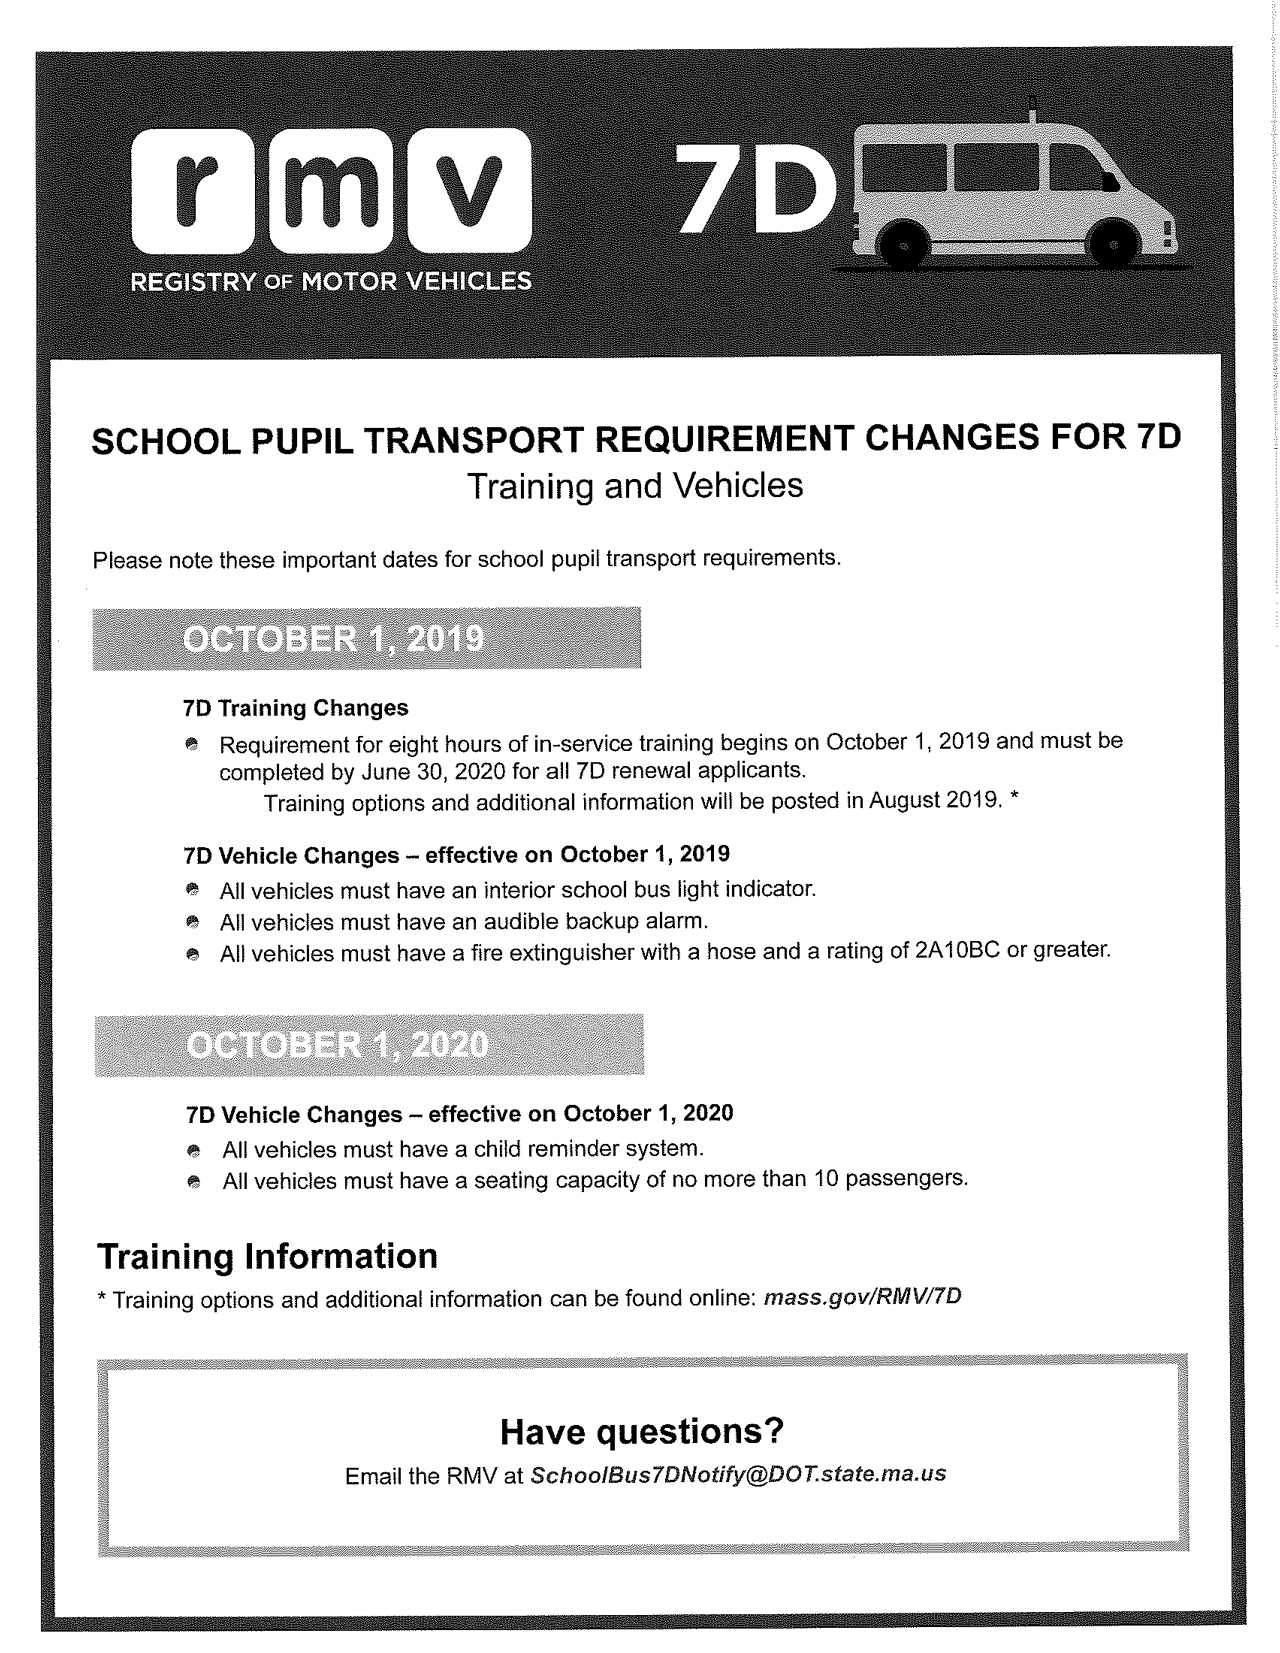 School Pupil Transport Requirement Changes for 7D - Training and Vehicles